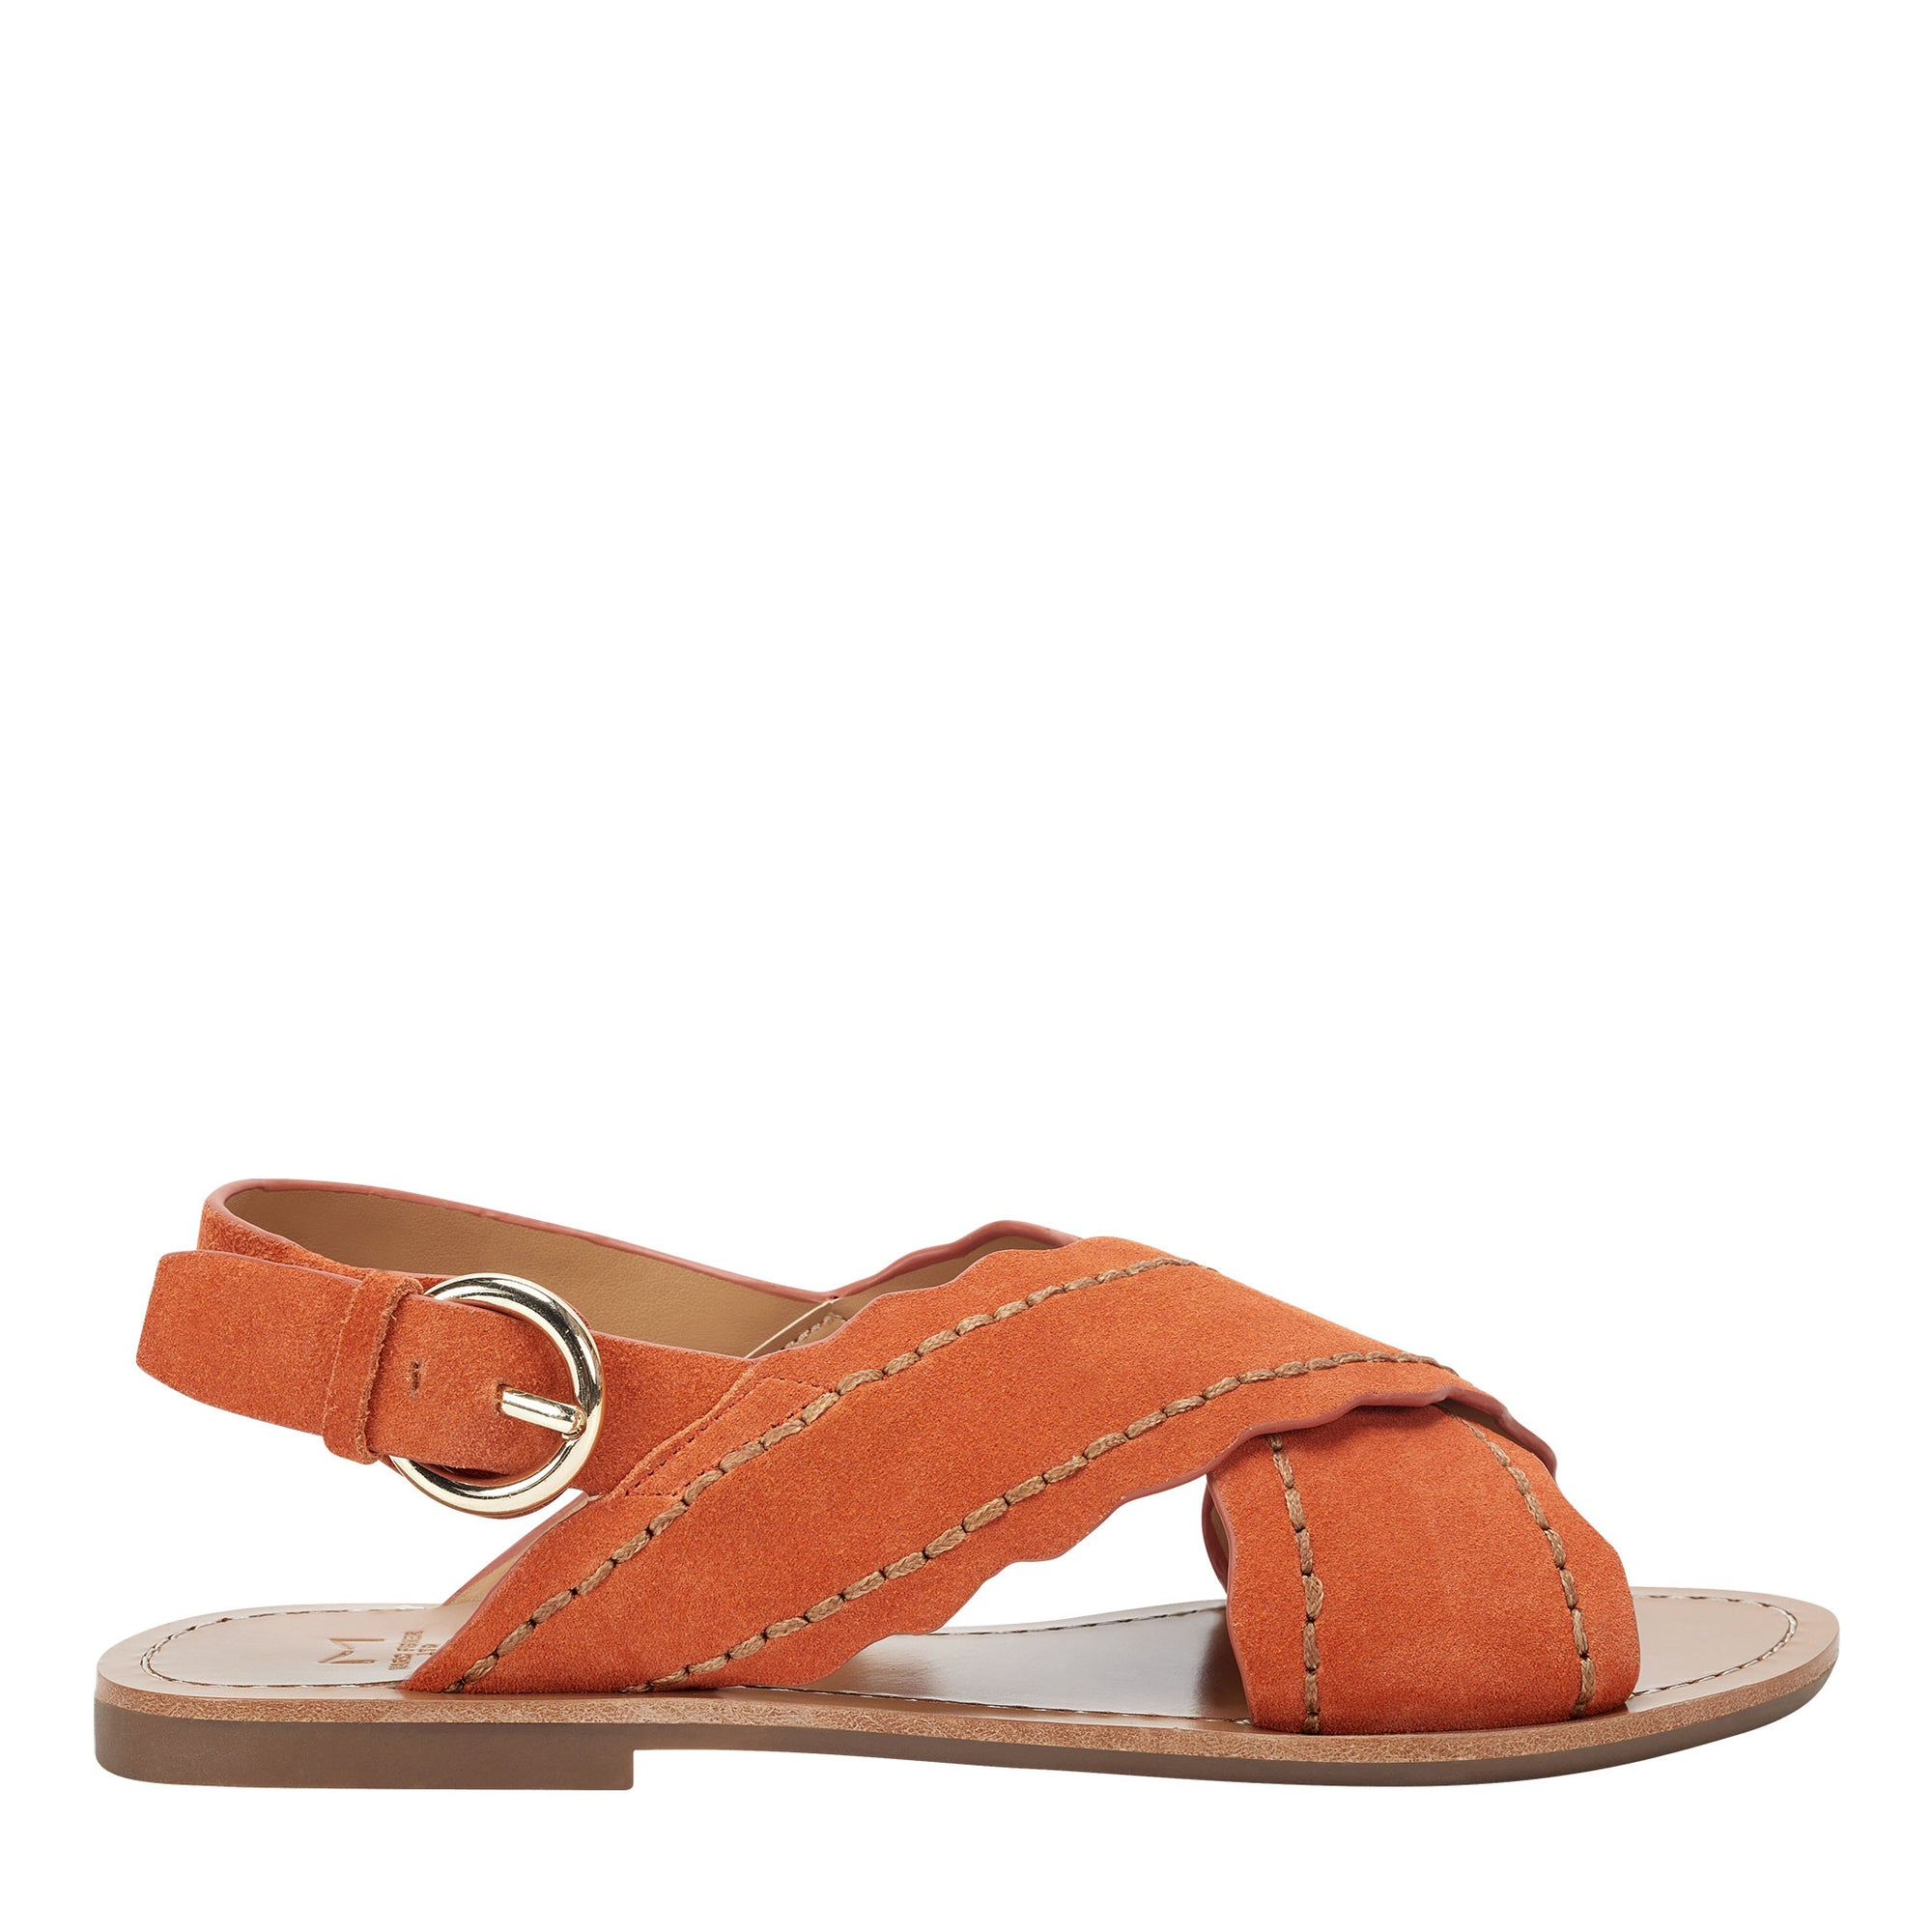 renny-flat-sandal-in-orange-suede